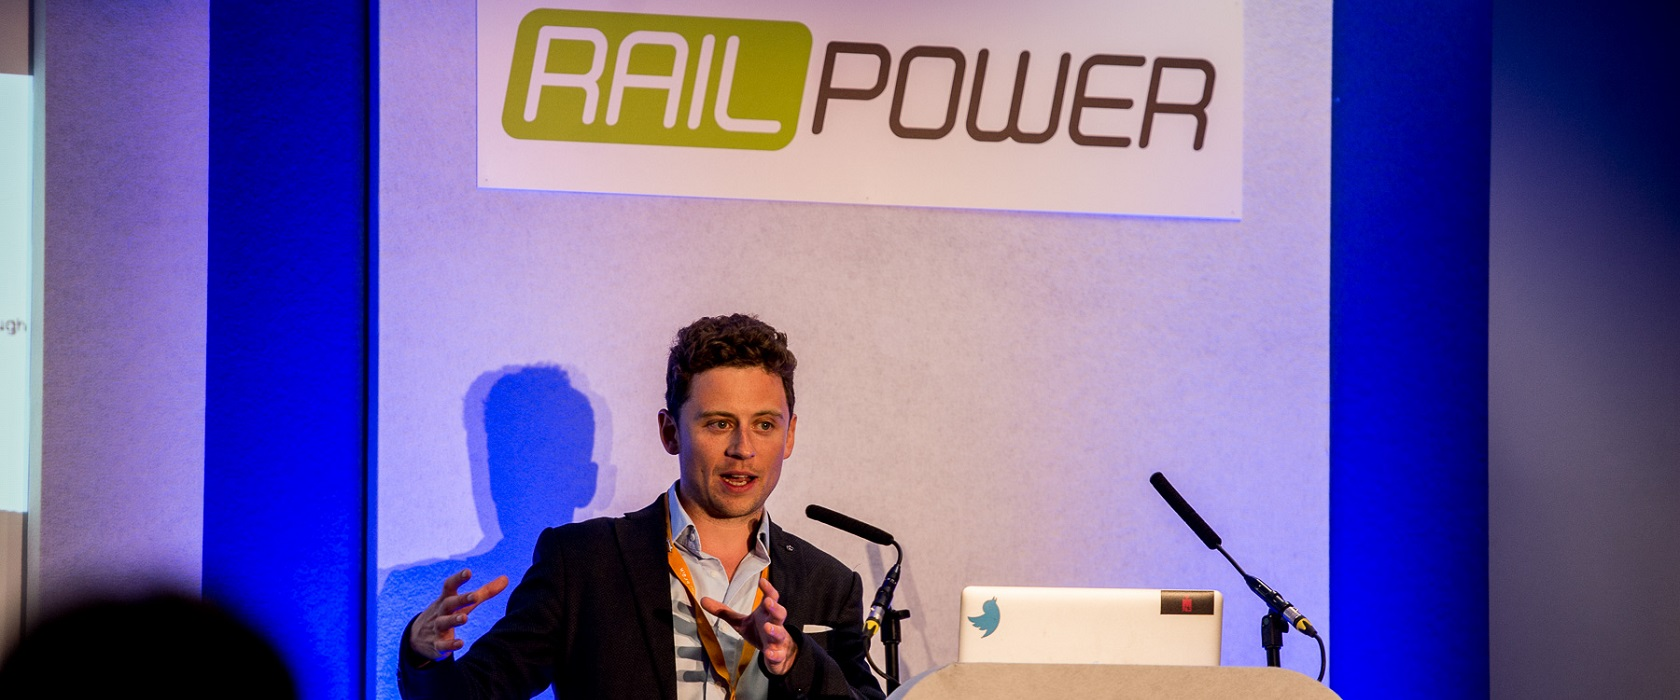 2016 key speakers at Rail Power